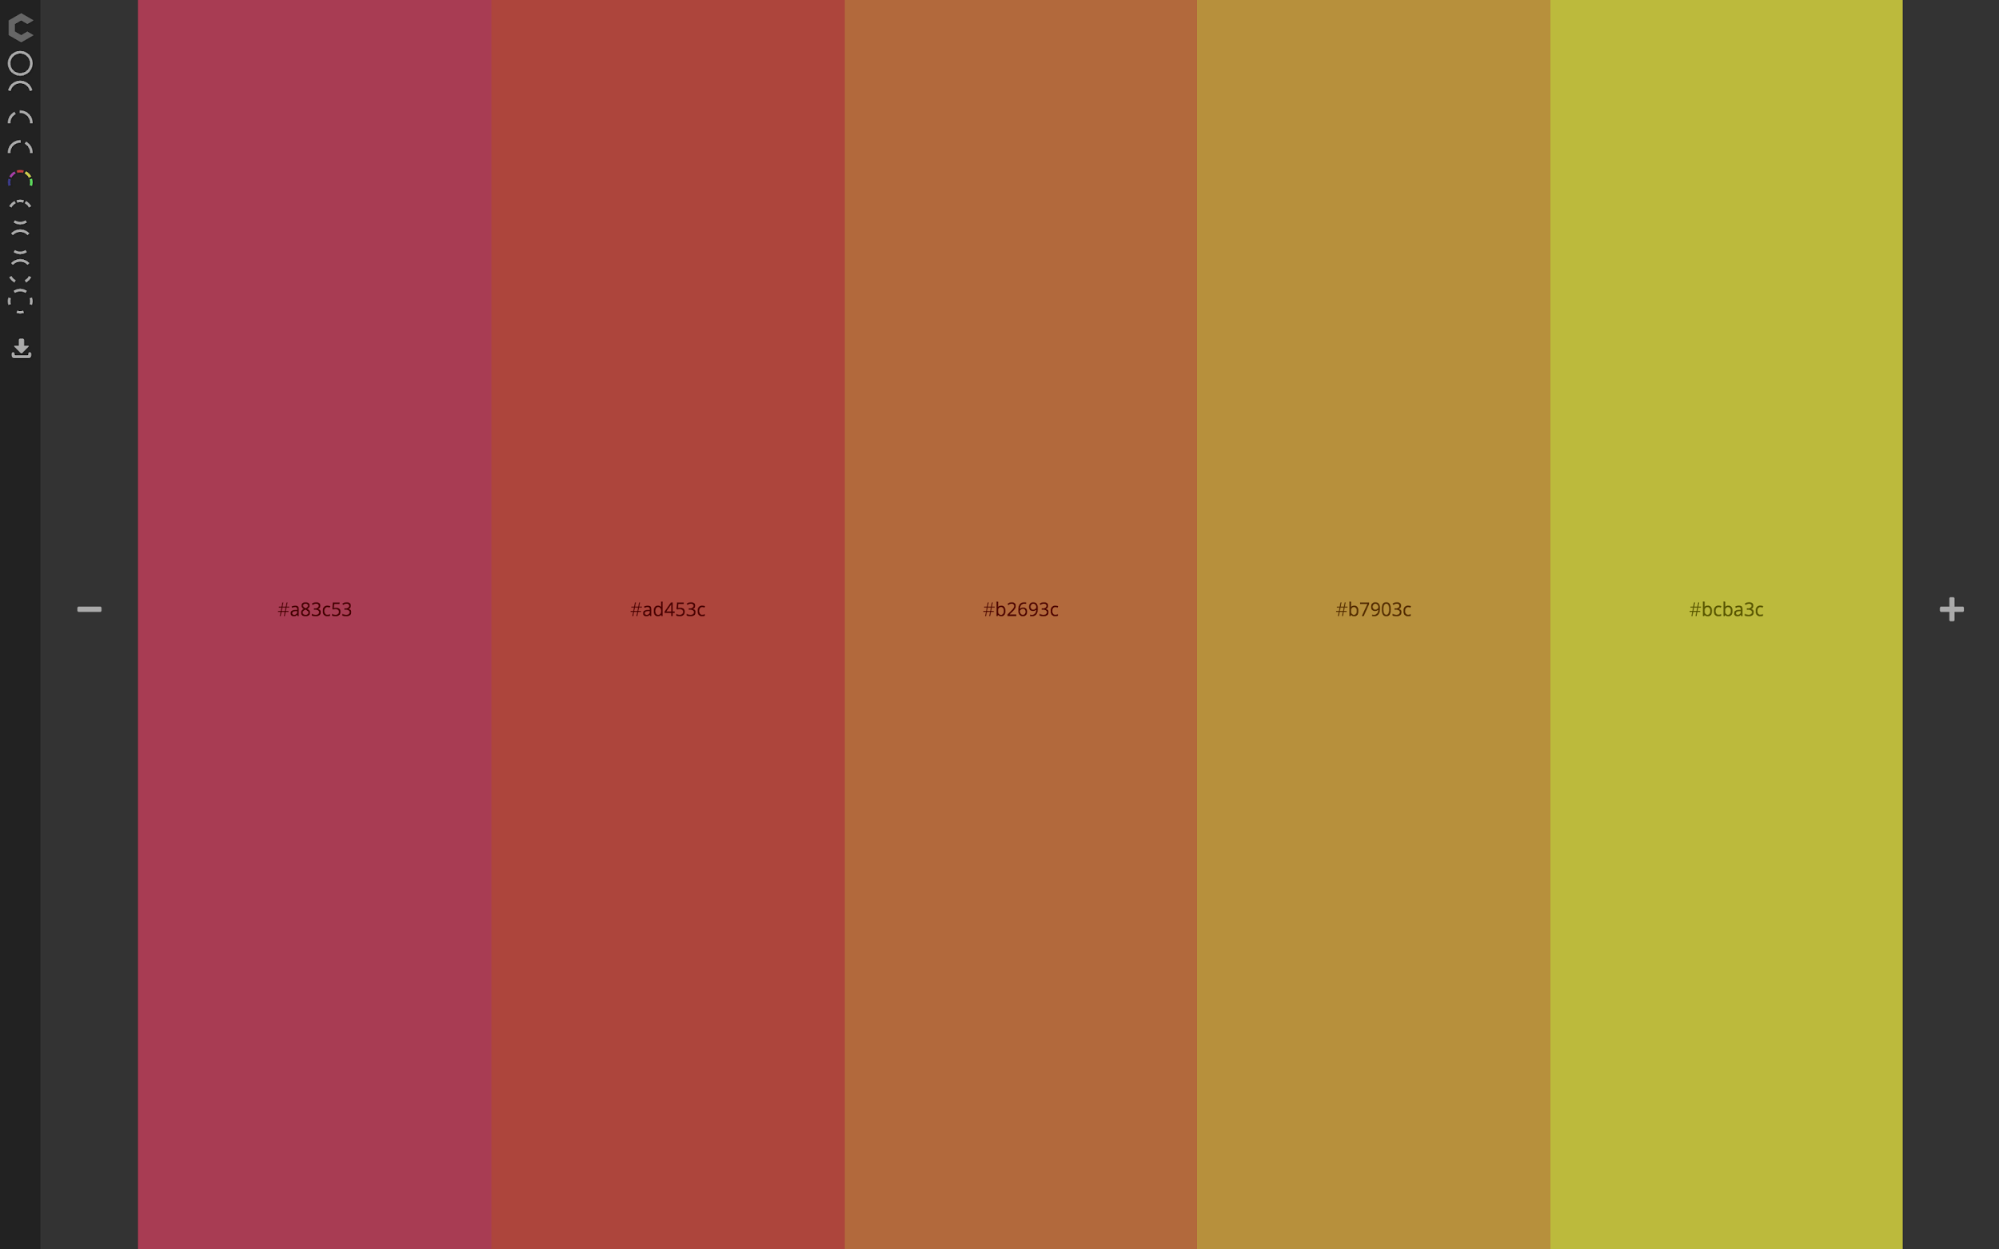 Analogous color scheme based on red, orange and yellow.